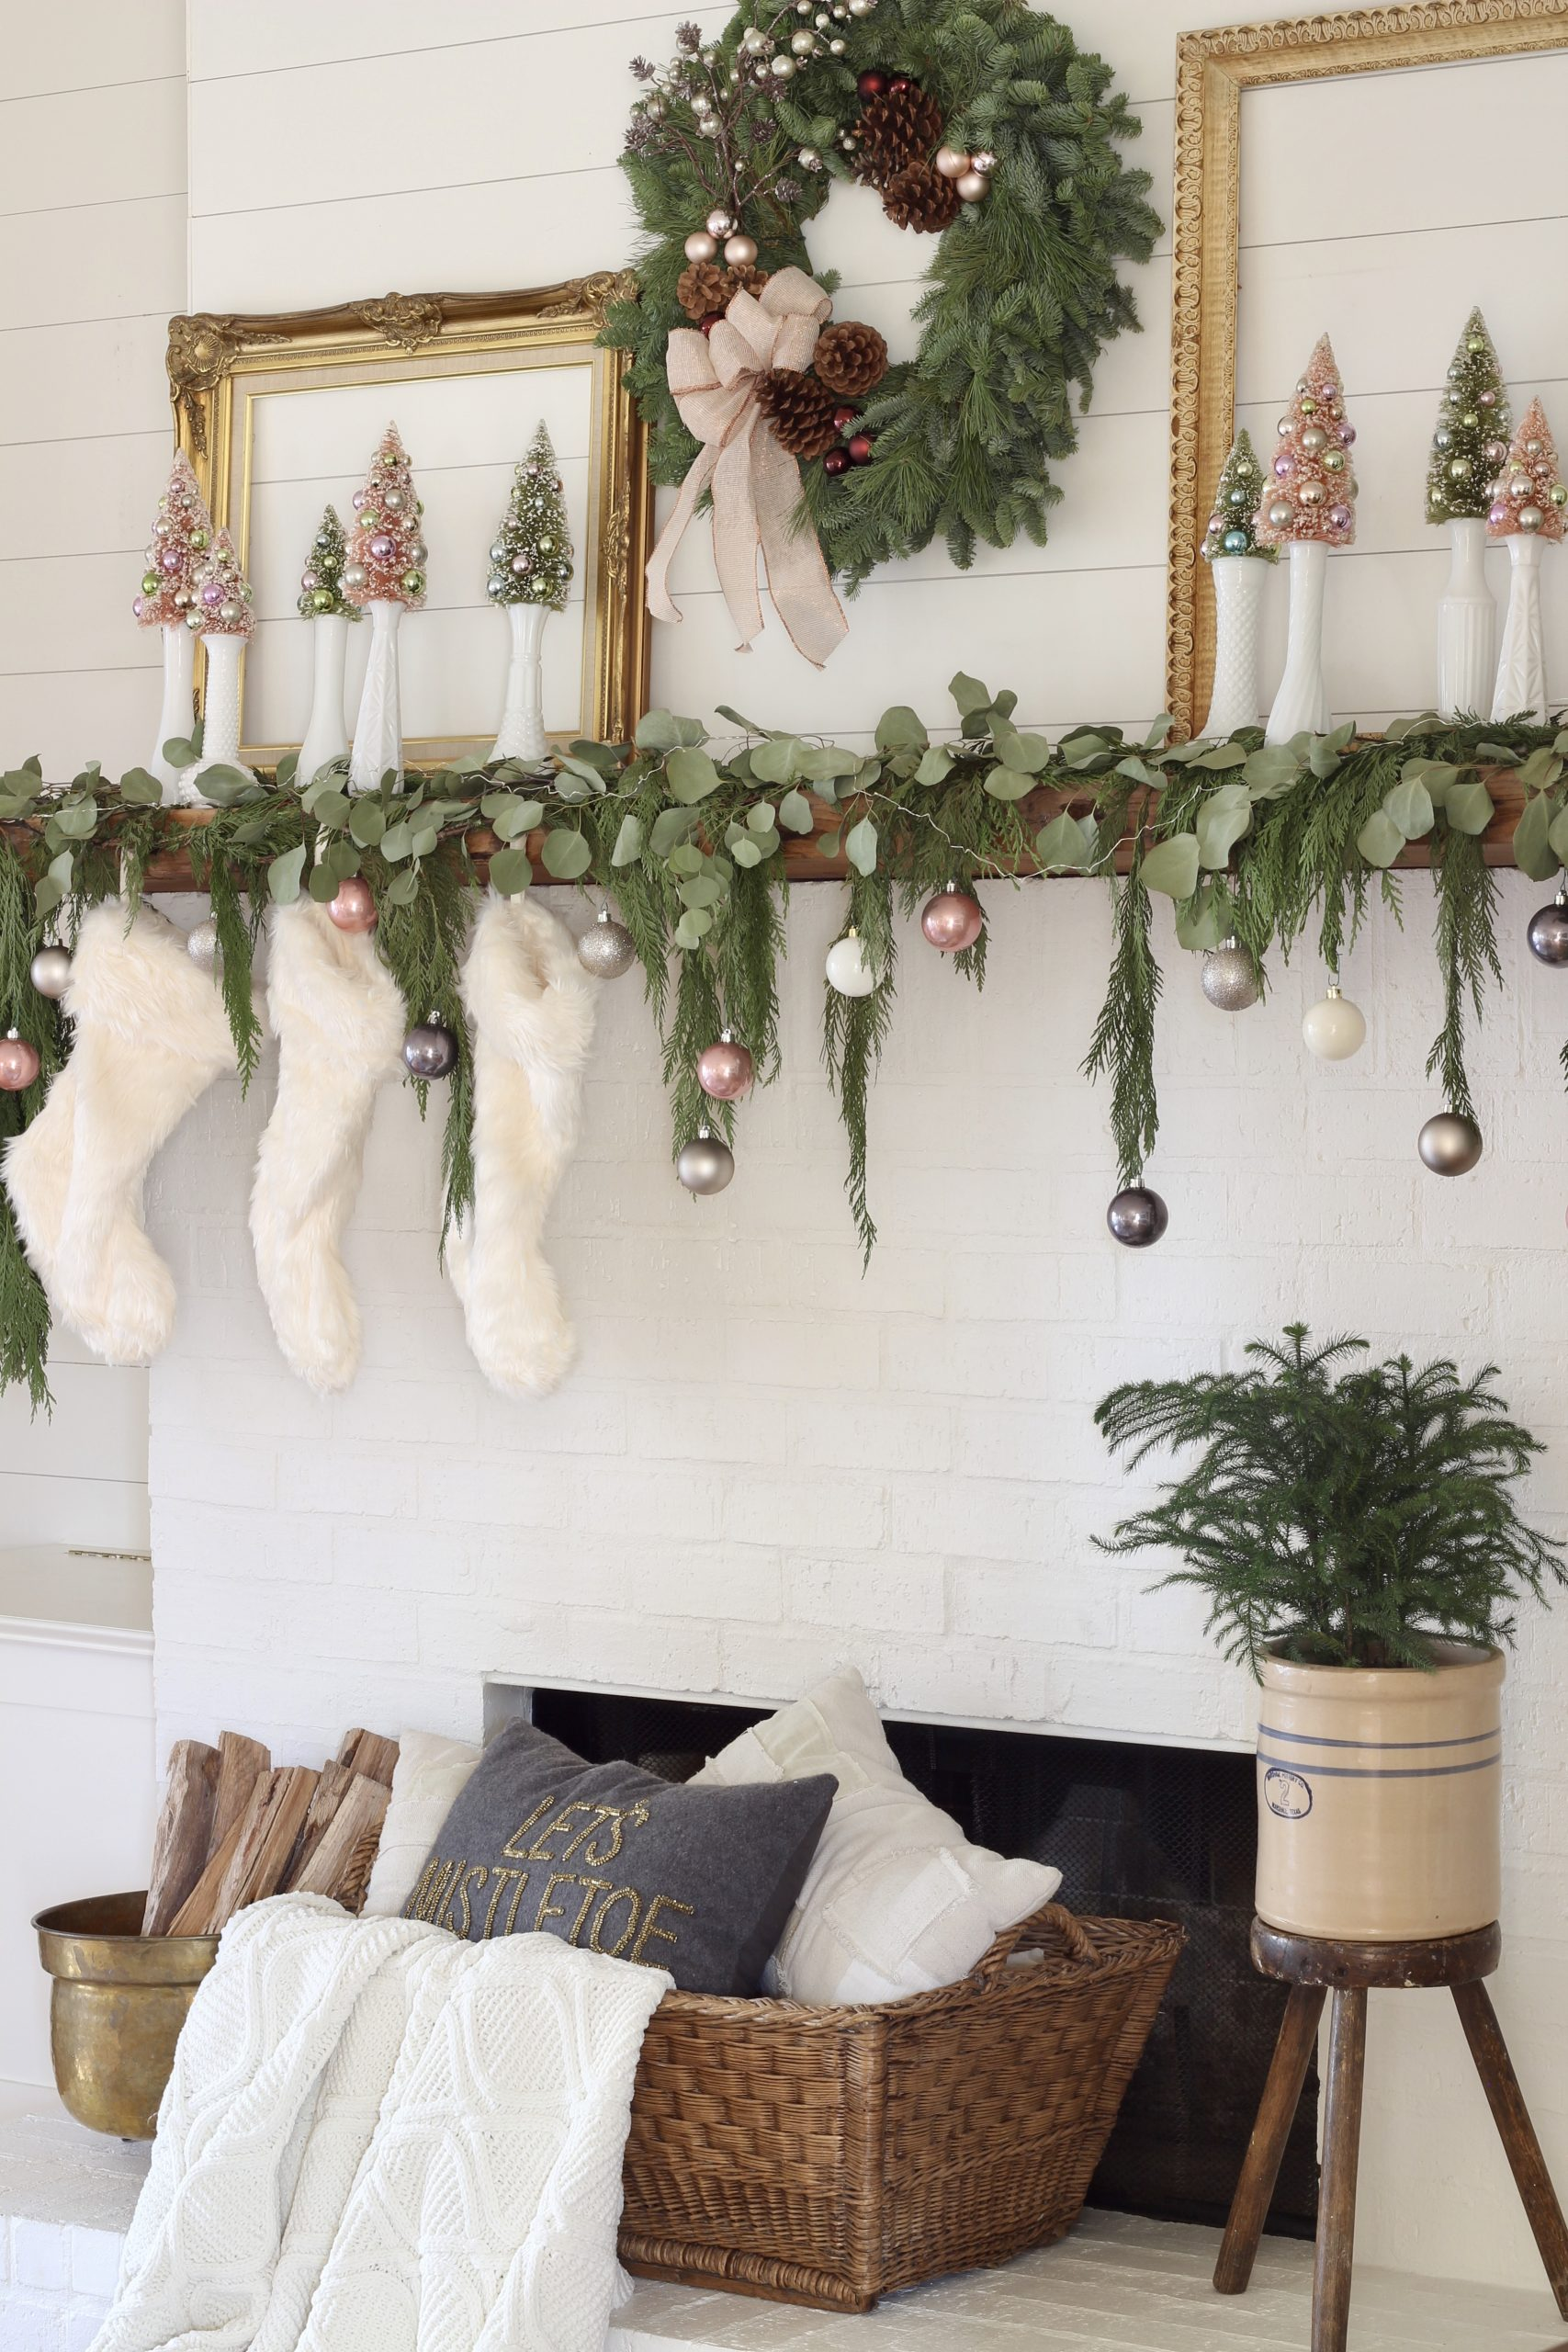 Evergreen wreath about Christmas mantel